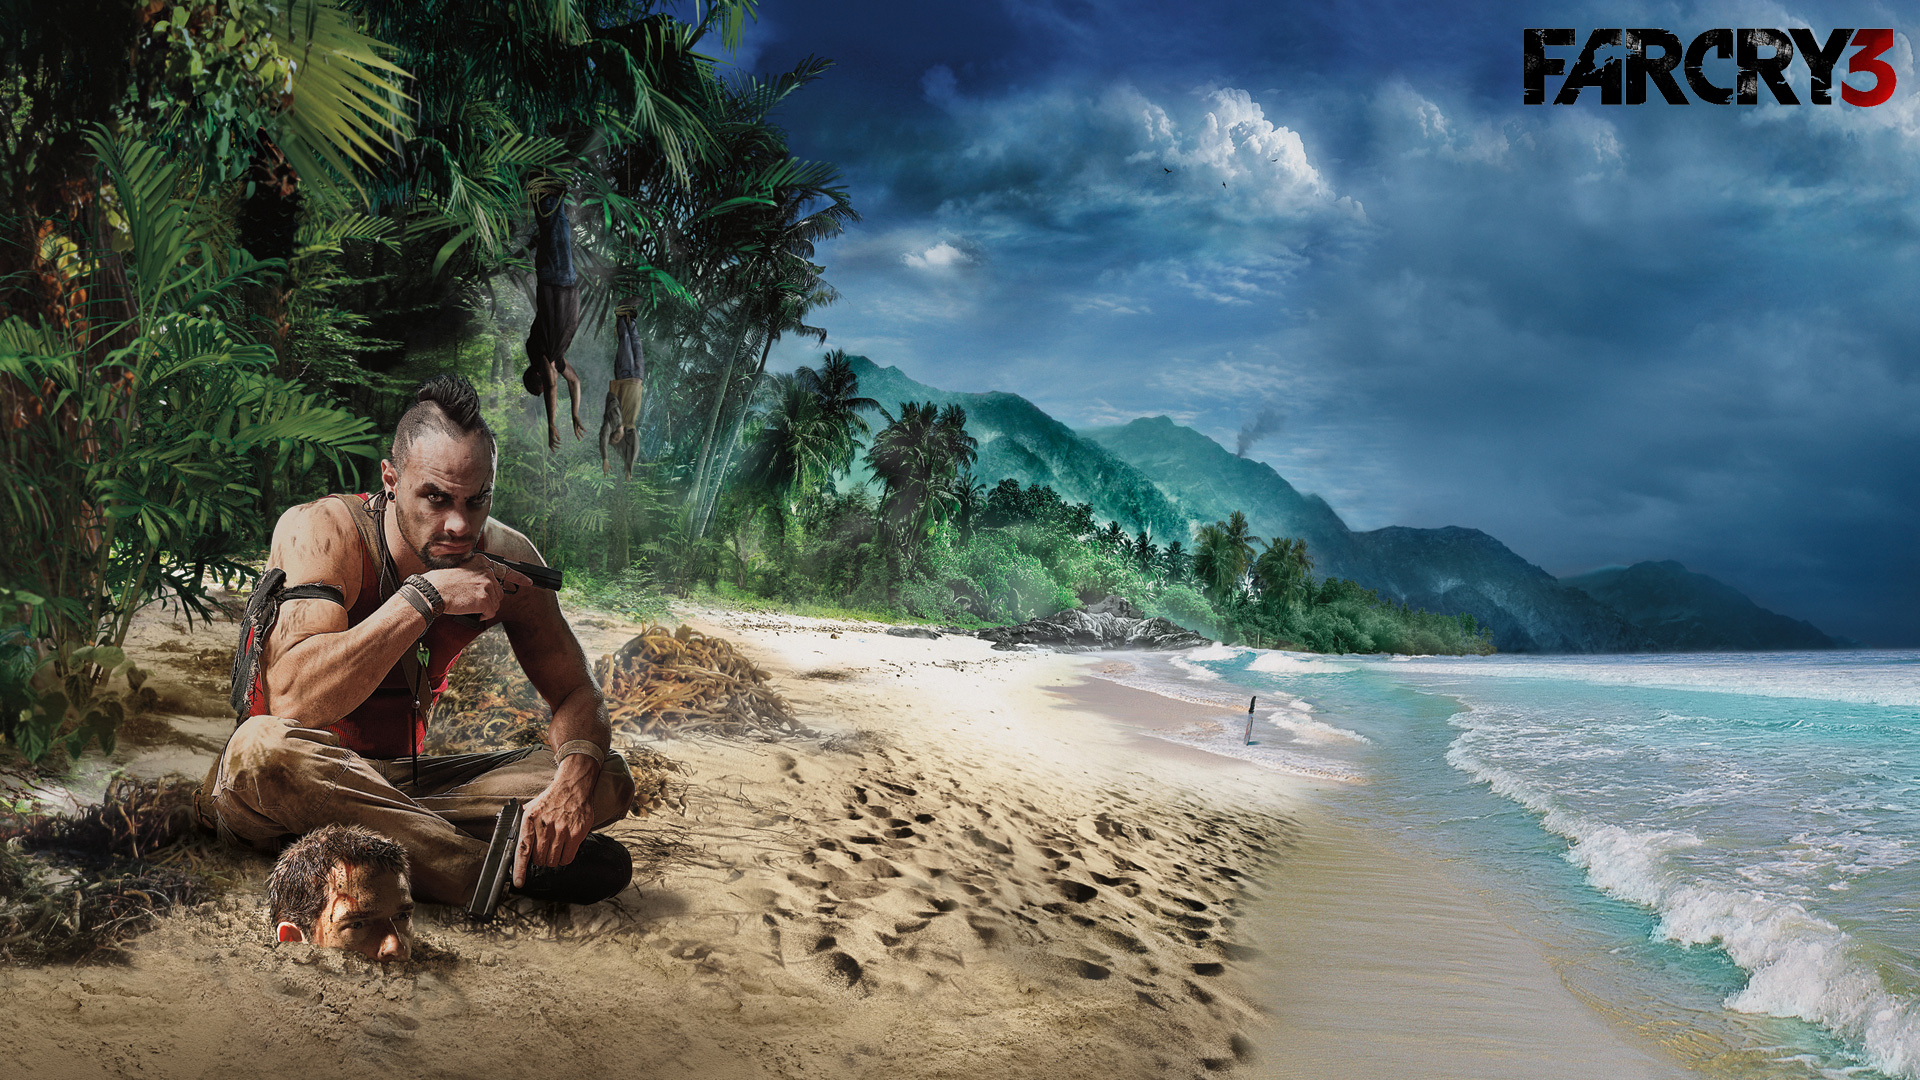 Far Cry 3 Details Launchbox Games Database